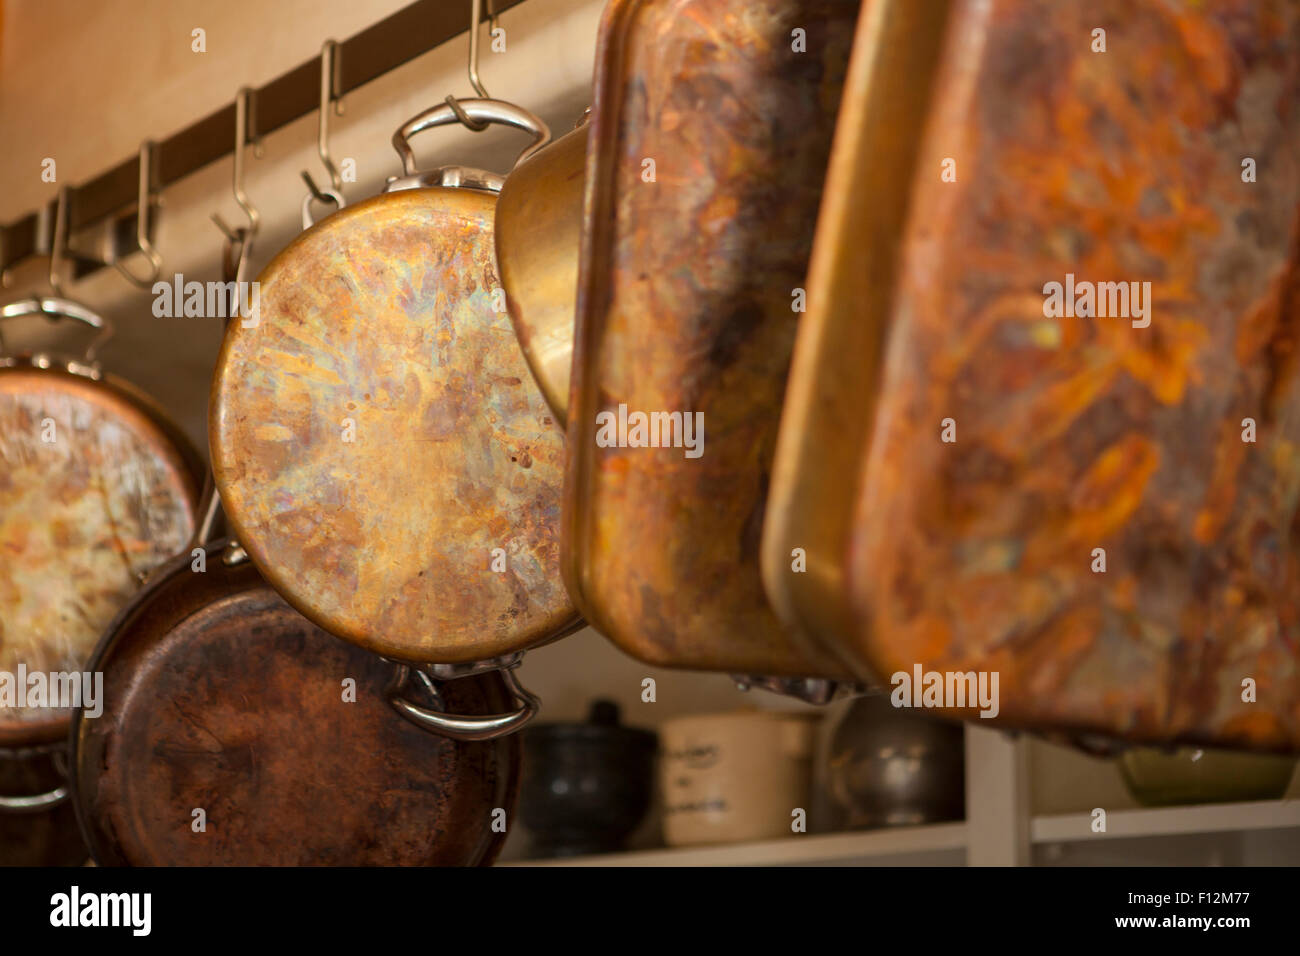 copper pots and pans in kitchen at Roblar Winery, Santa Ynez Valley, California - Stock Image